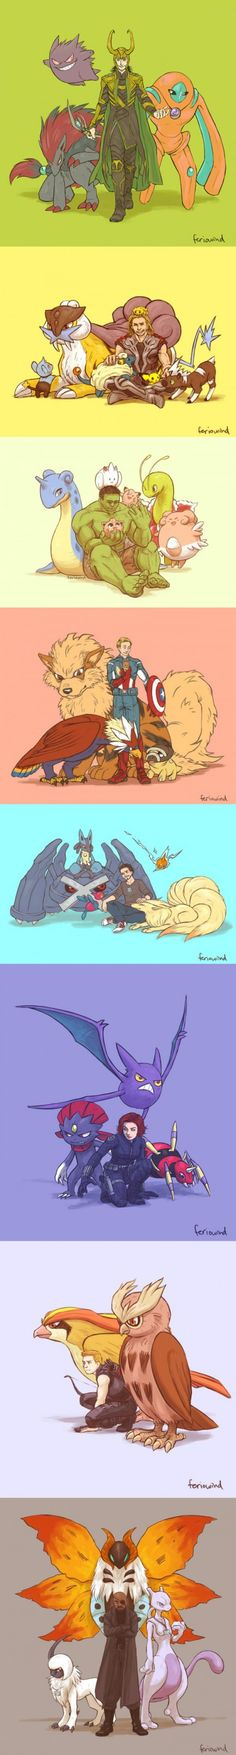 If the Avengers had Pokemon, there a couple of others not pictured here.